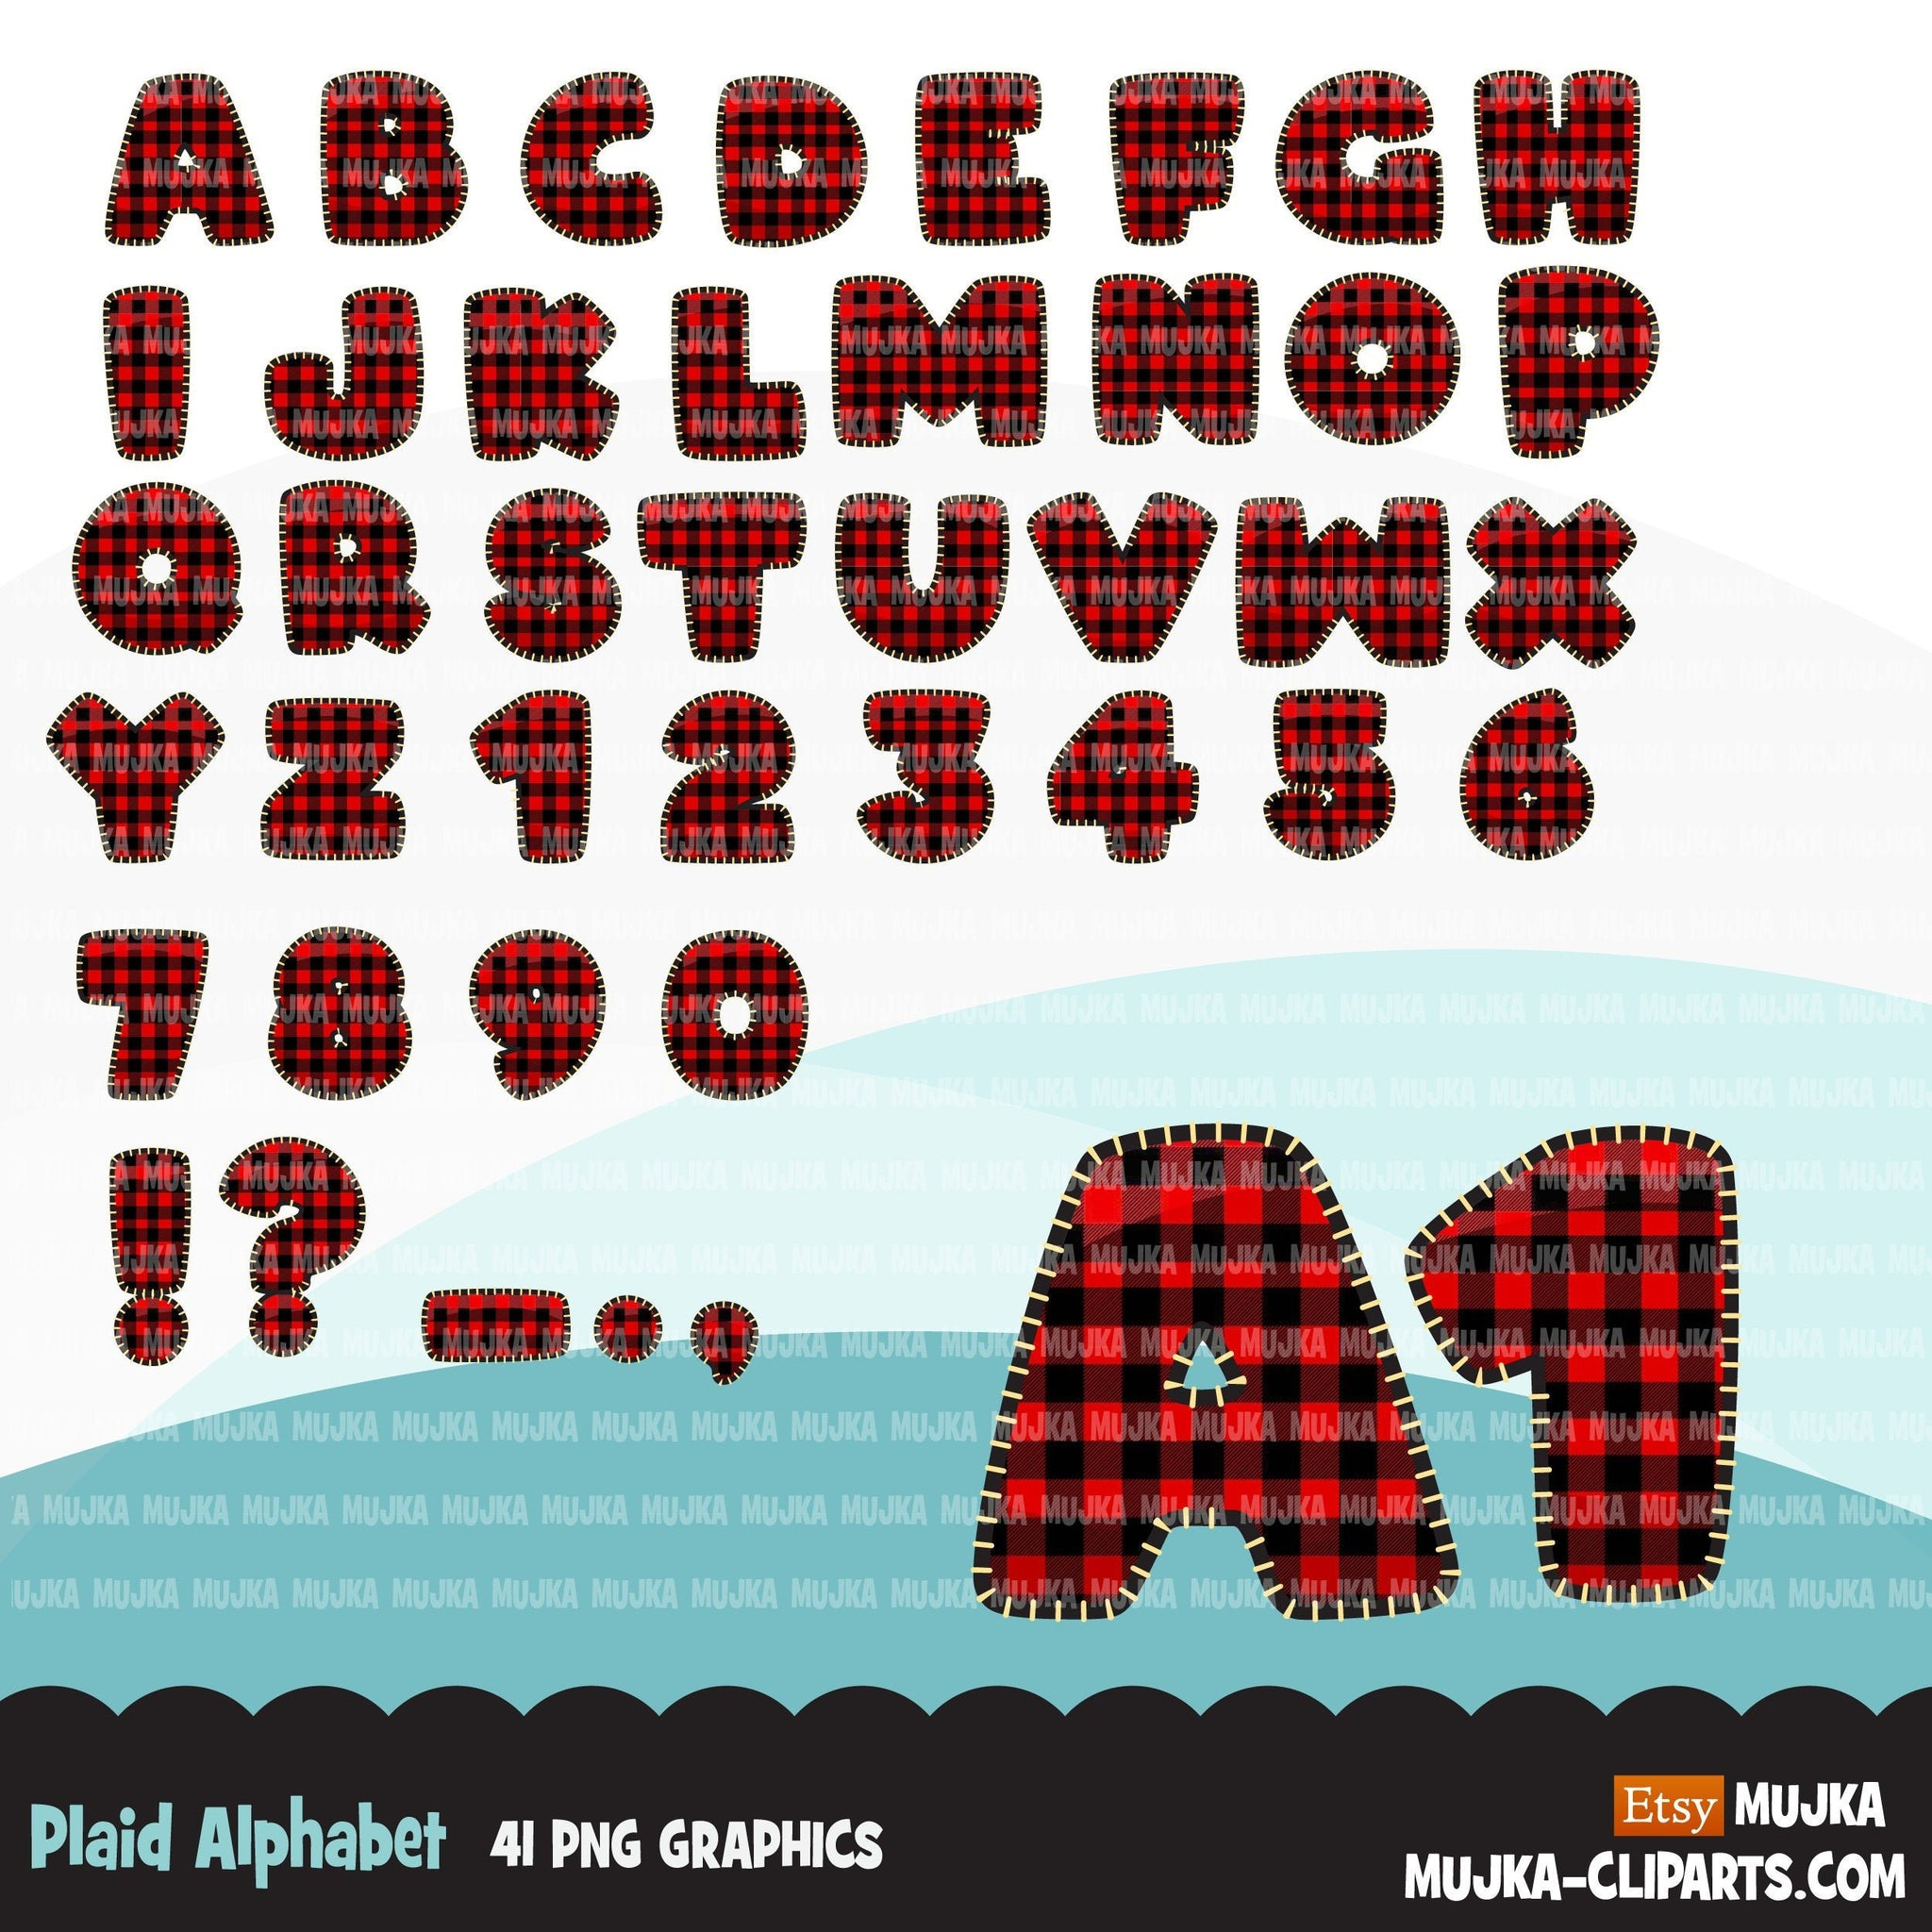 Christmas Plaid Alphabet Clipart plaid letters and numbers cute Christmas PNG graphics, stitched outline